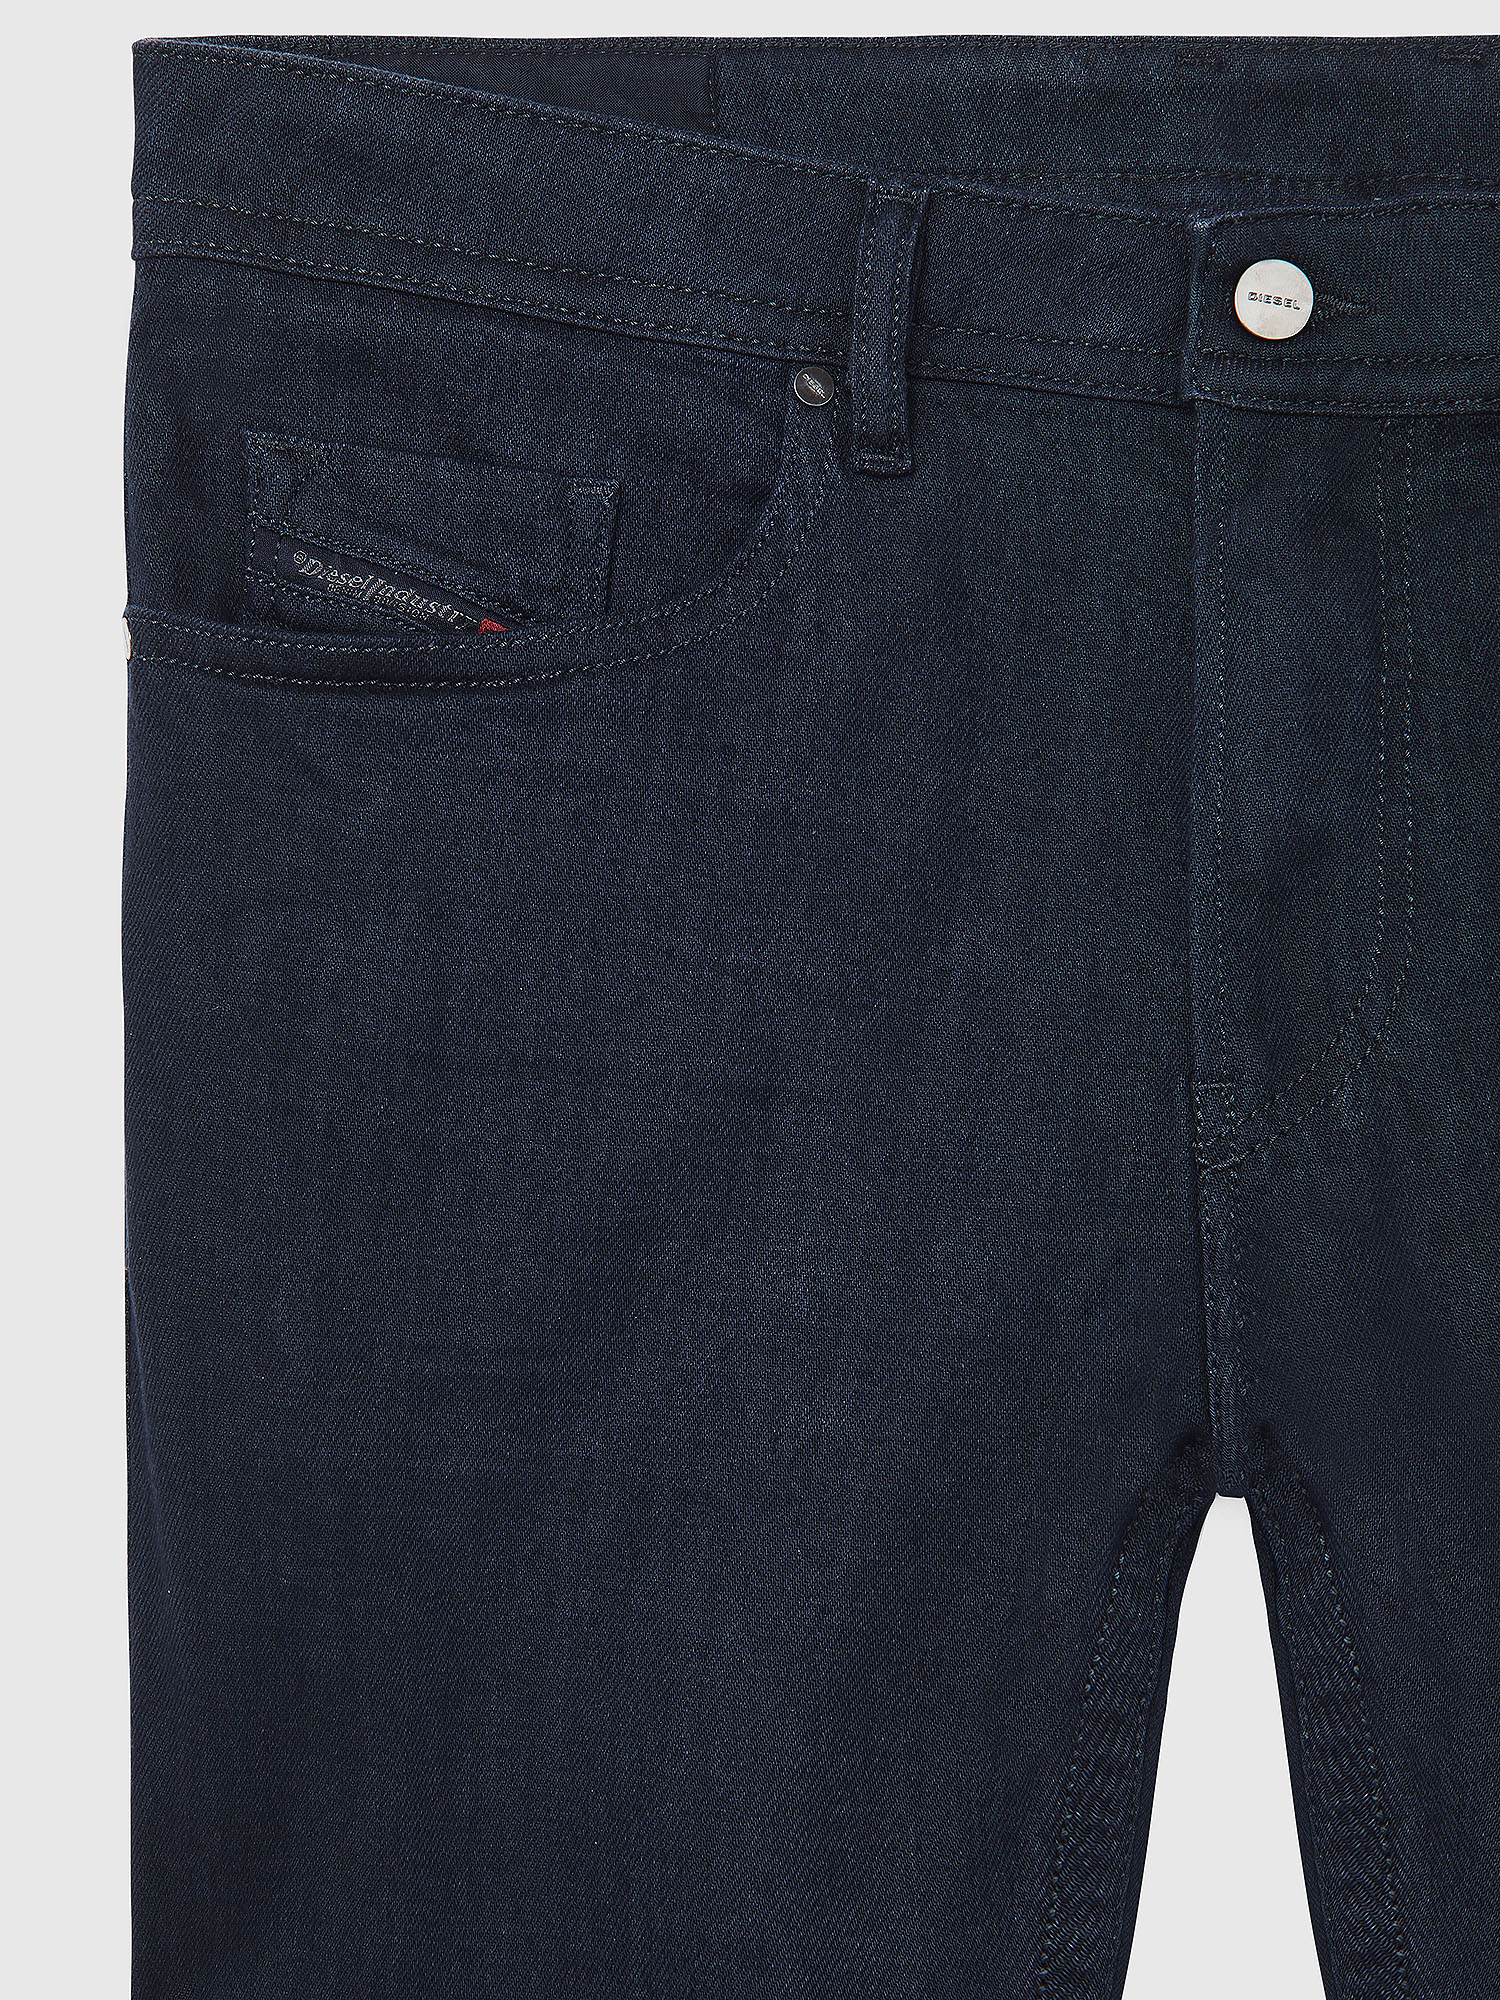 Diesel - Thommer 085AQ,  - Jeans - Image 3